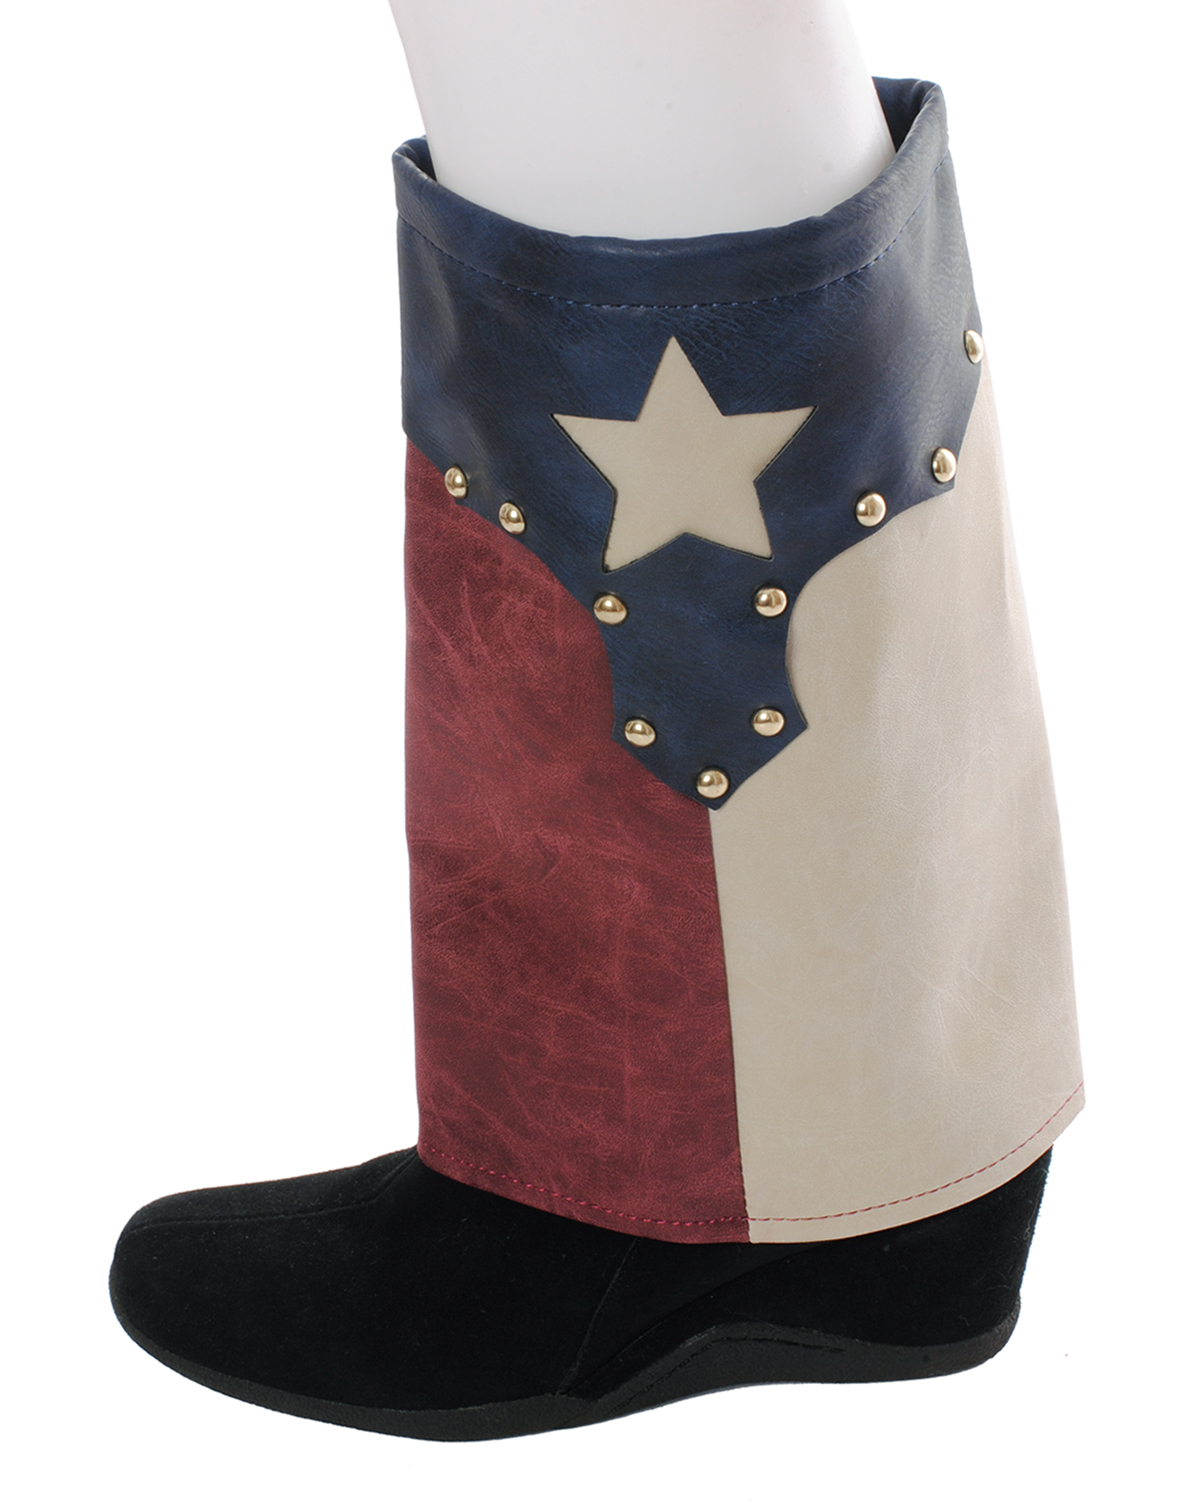 IW0107GMR(TX)-wholesale-boot-rugs-western-leatherette-studs-drawstring-closure-lone-star-texas-flag(0).jpg